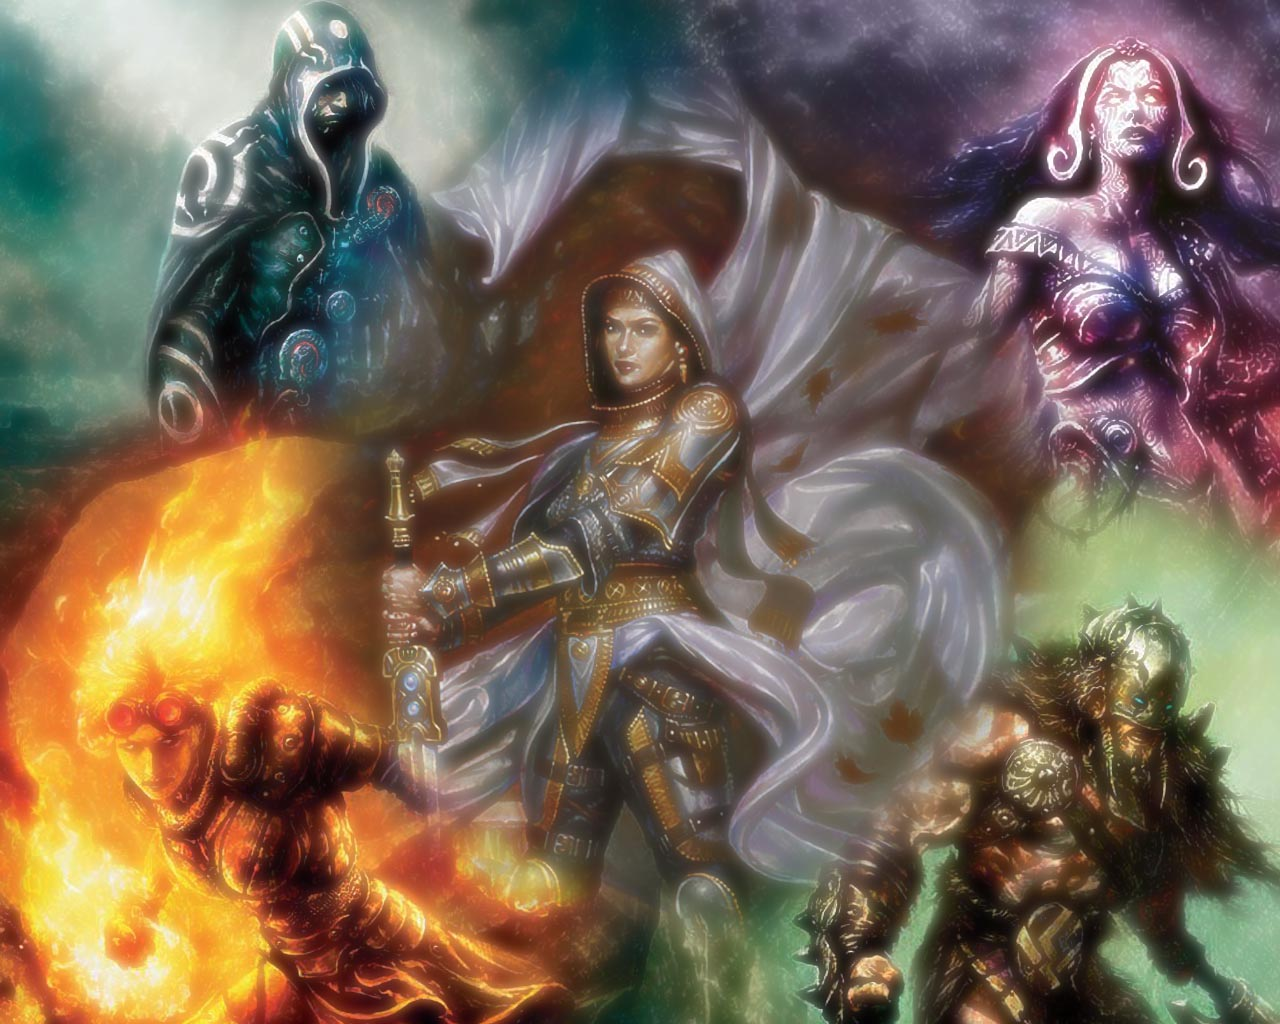 Magic The Gathering Wallpaper Hd Planeswalker Posted By Michelle